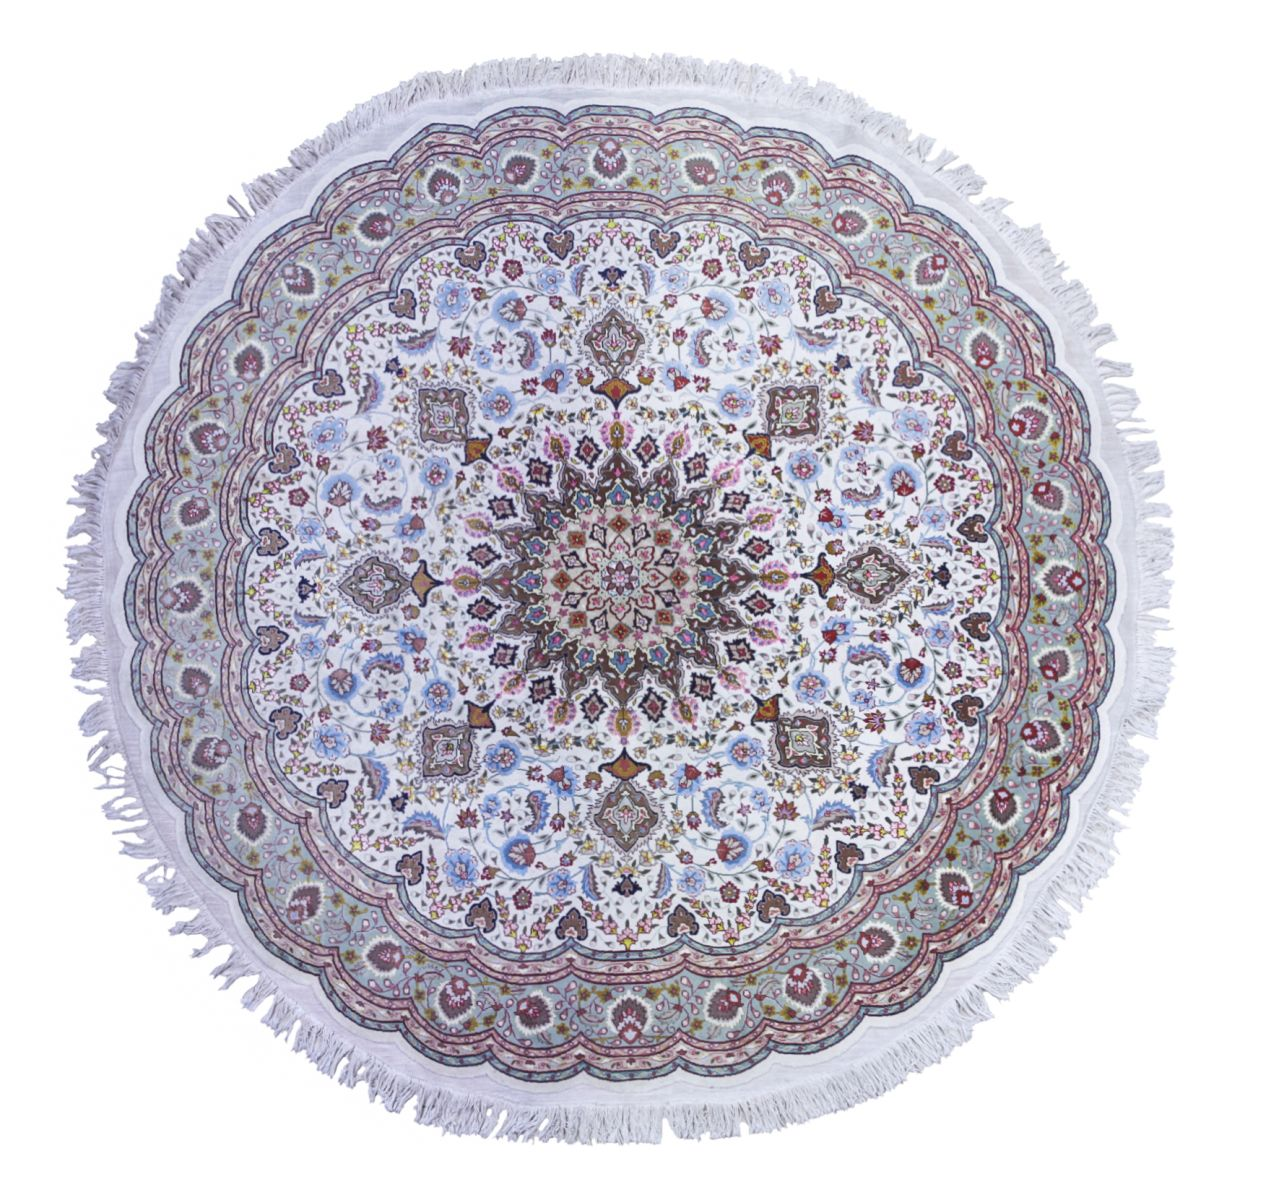 #174 Persian carpet round | Perserteppich Image